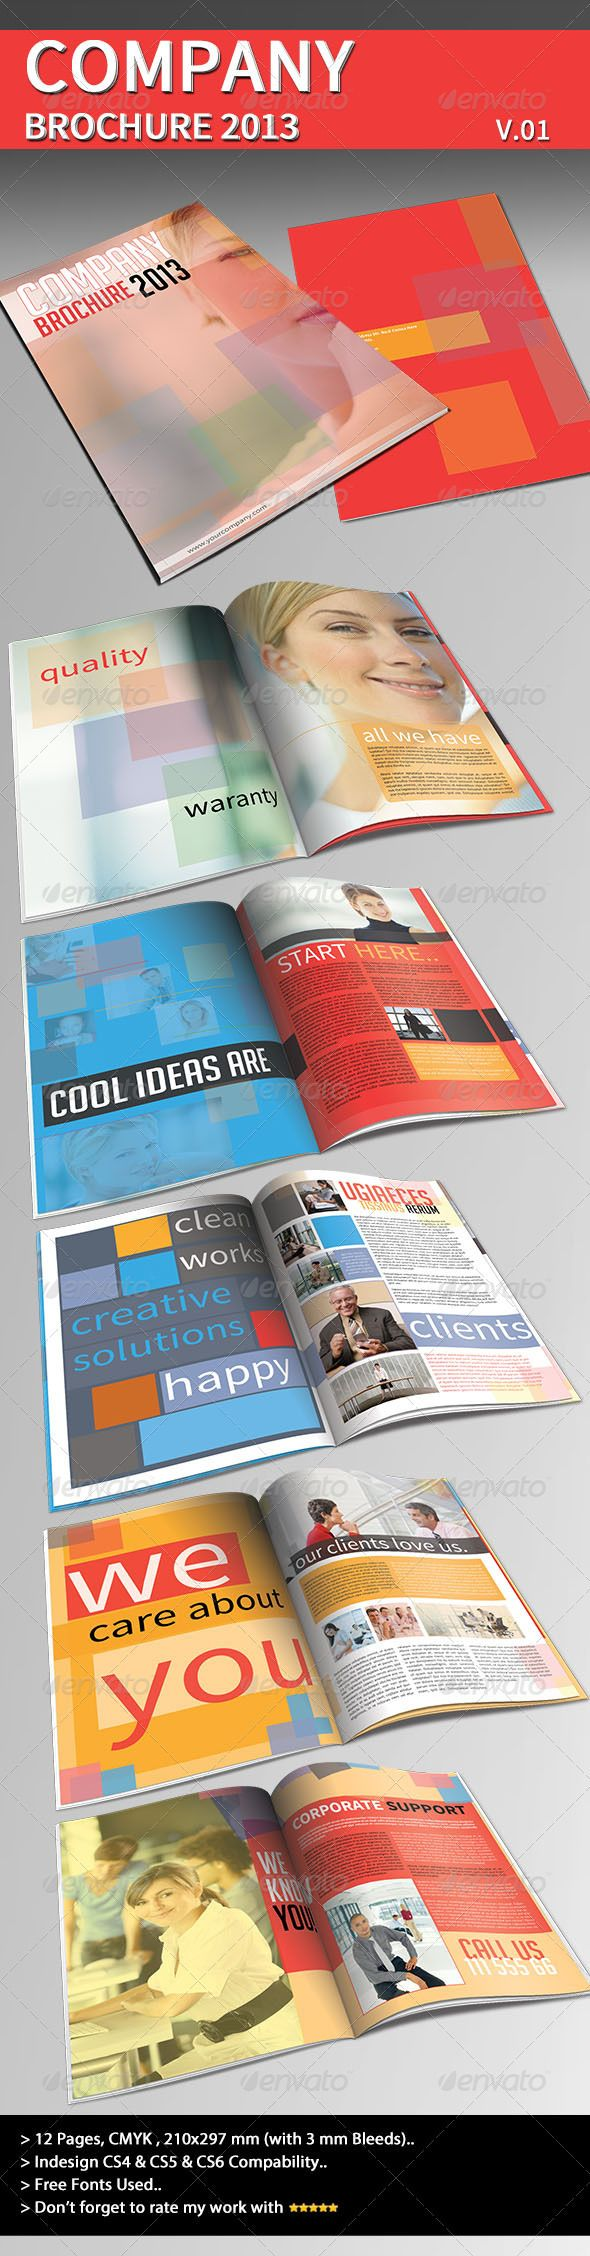 how to save indesign pdf for print cmyk